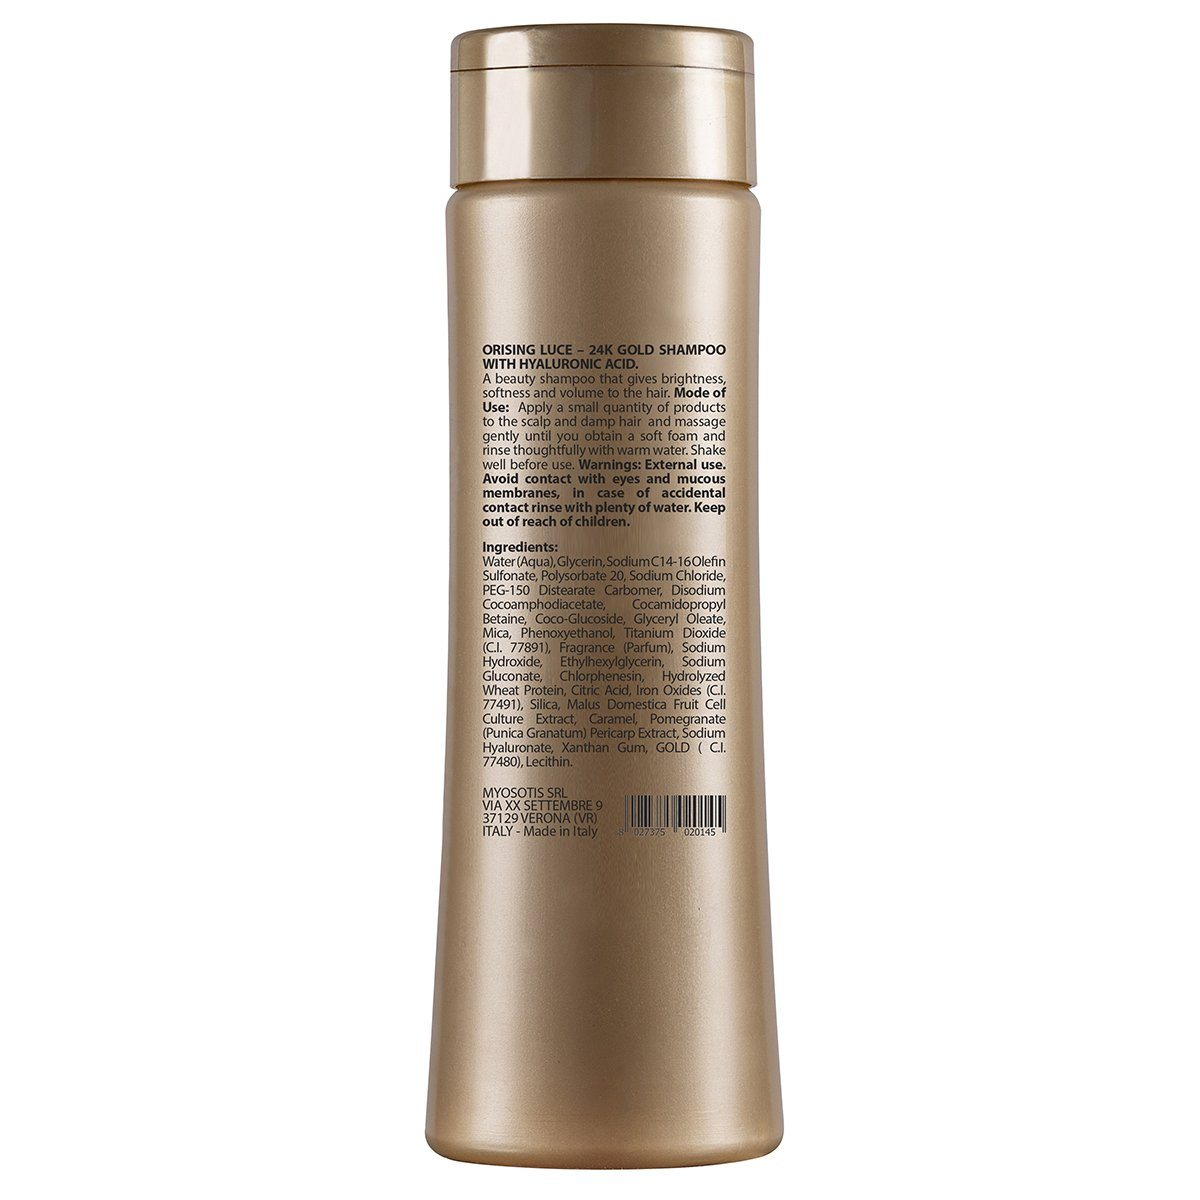 24K Gold Shampoo with Hyaluronic Acid